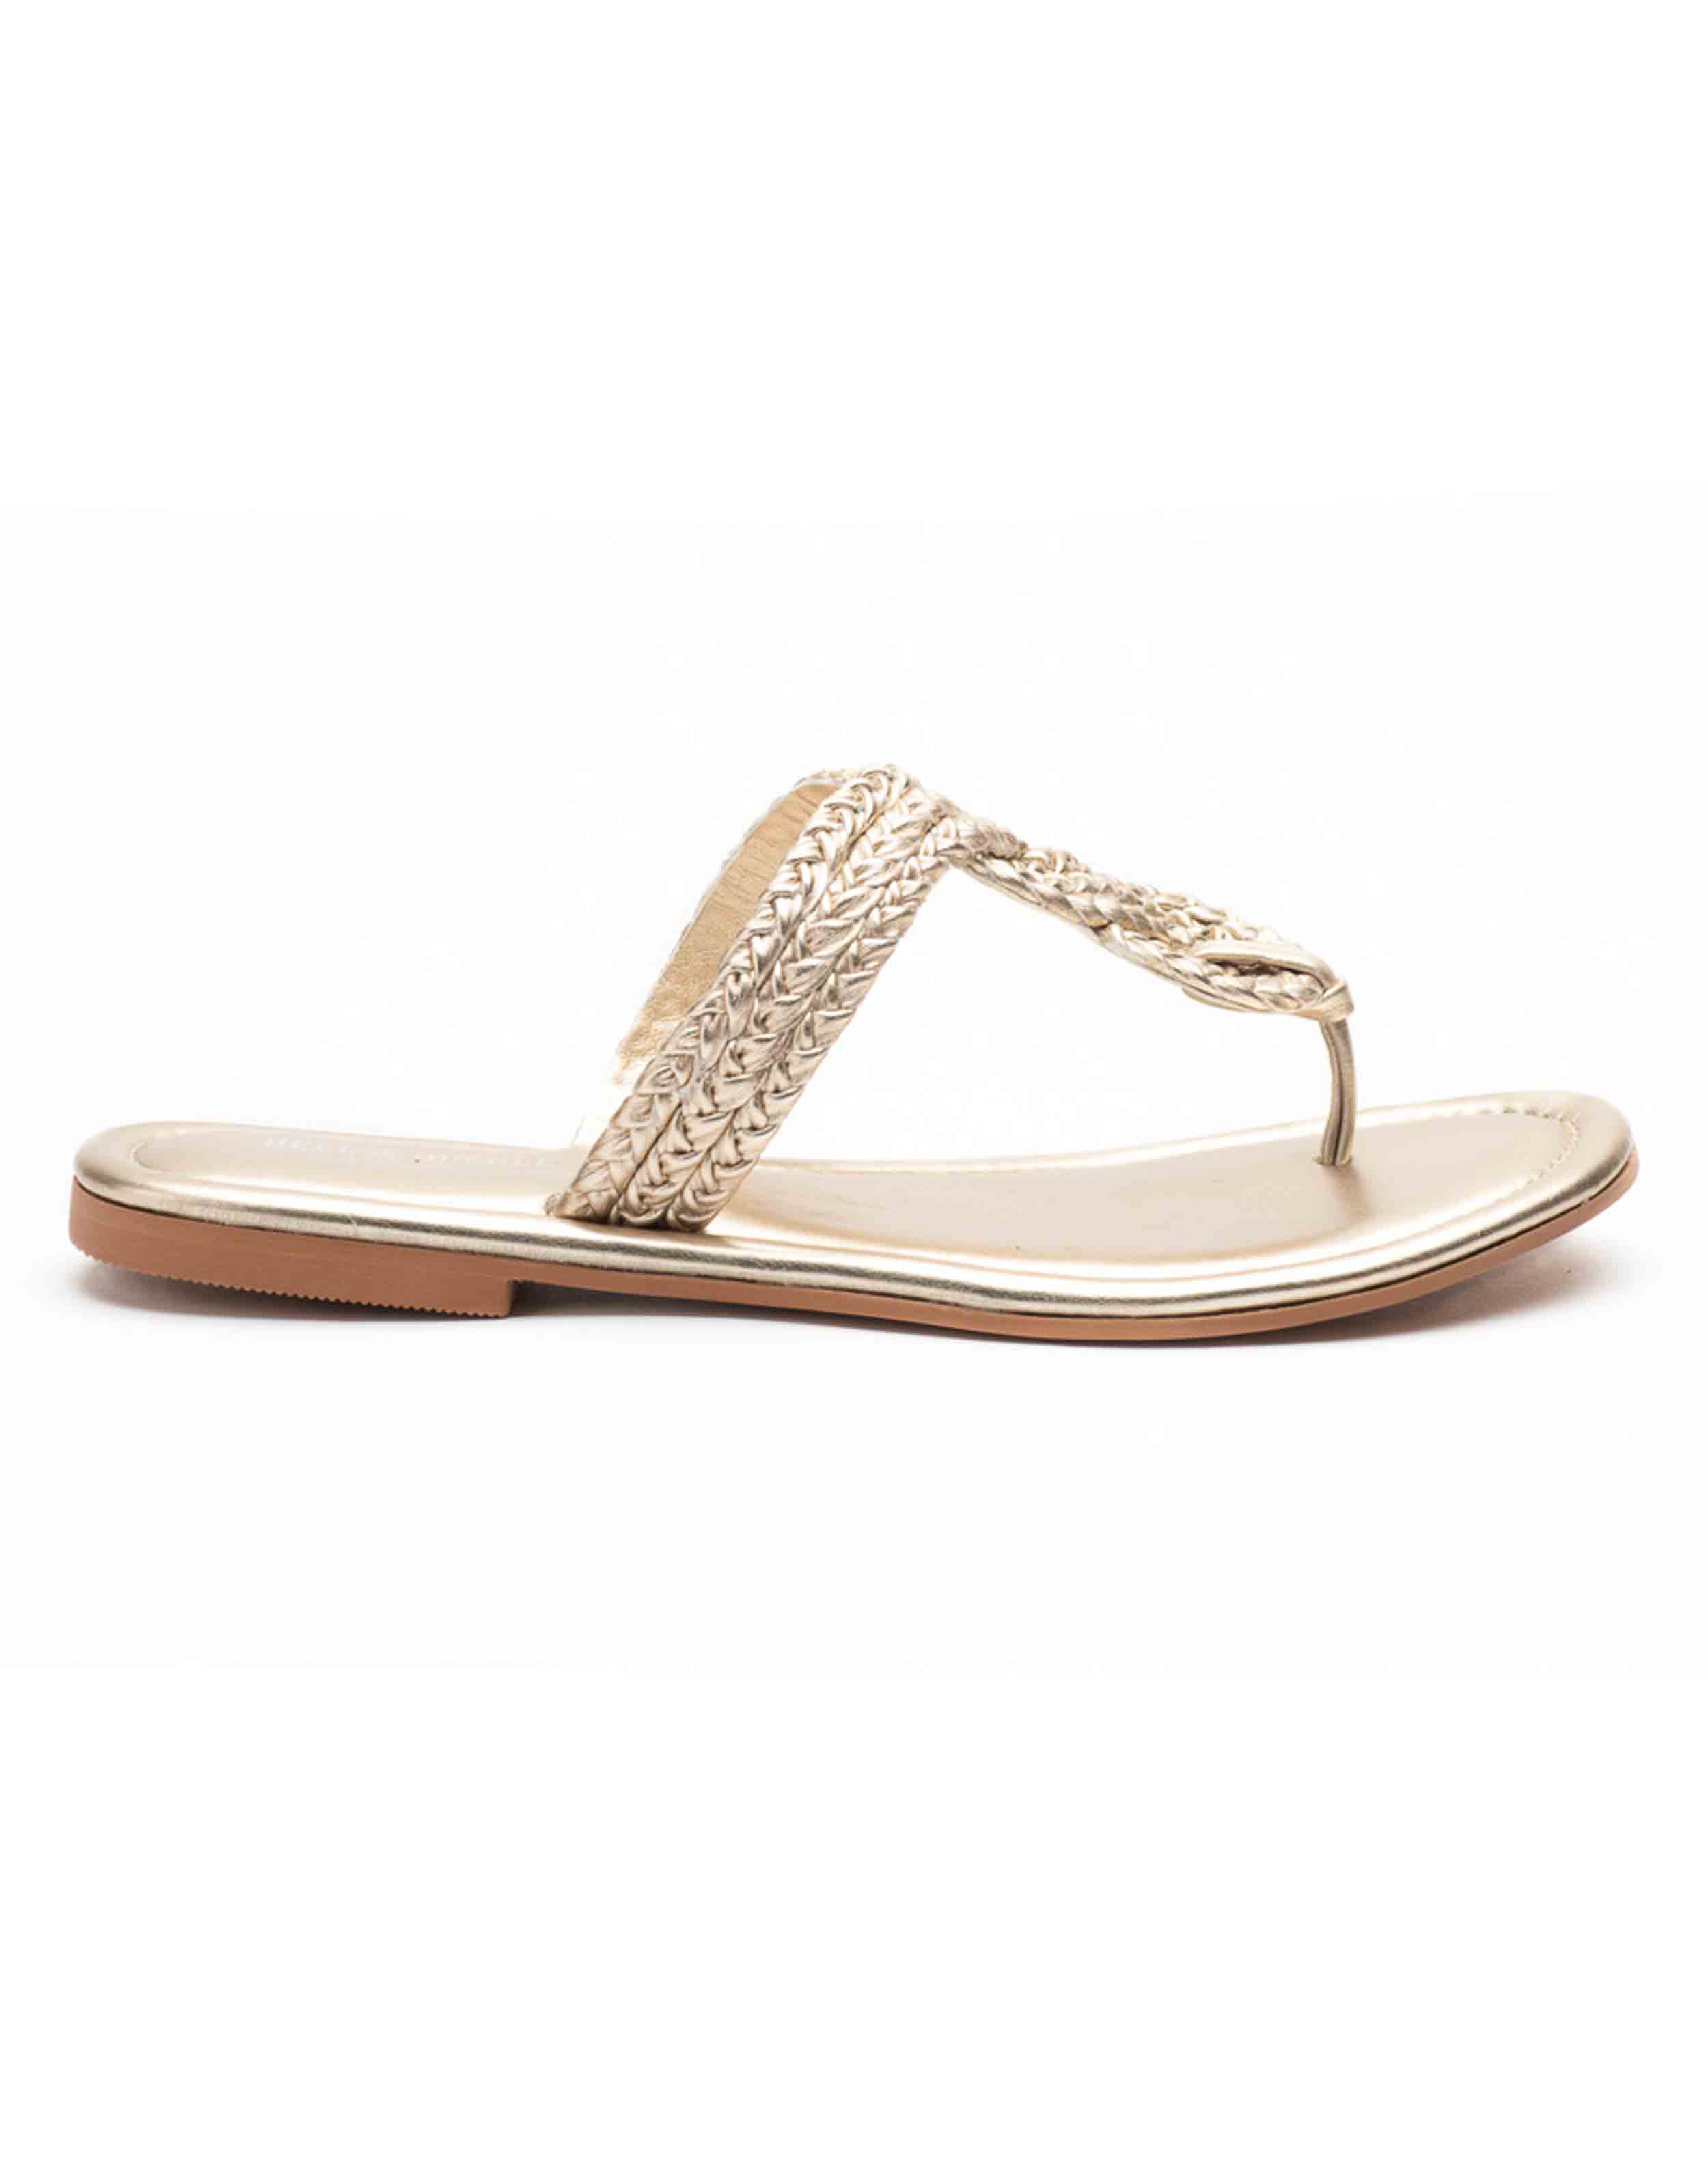 Heel _ Buckle London-Shoes-HBDARW095-GOdl Knotted Flat Sandals-Champagne Gold-1